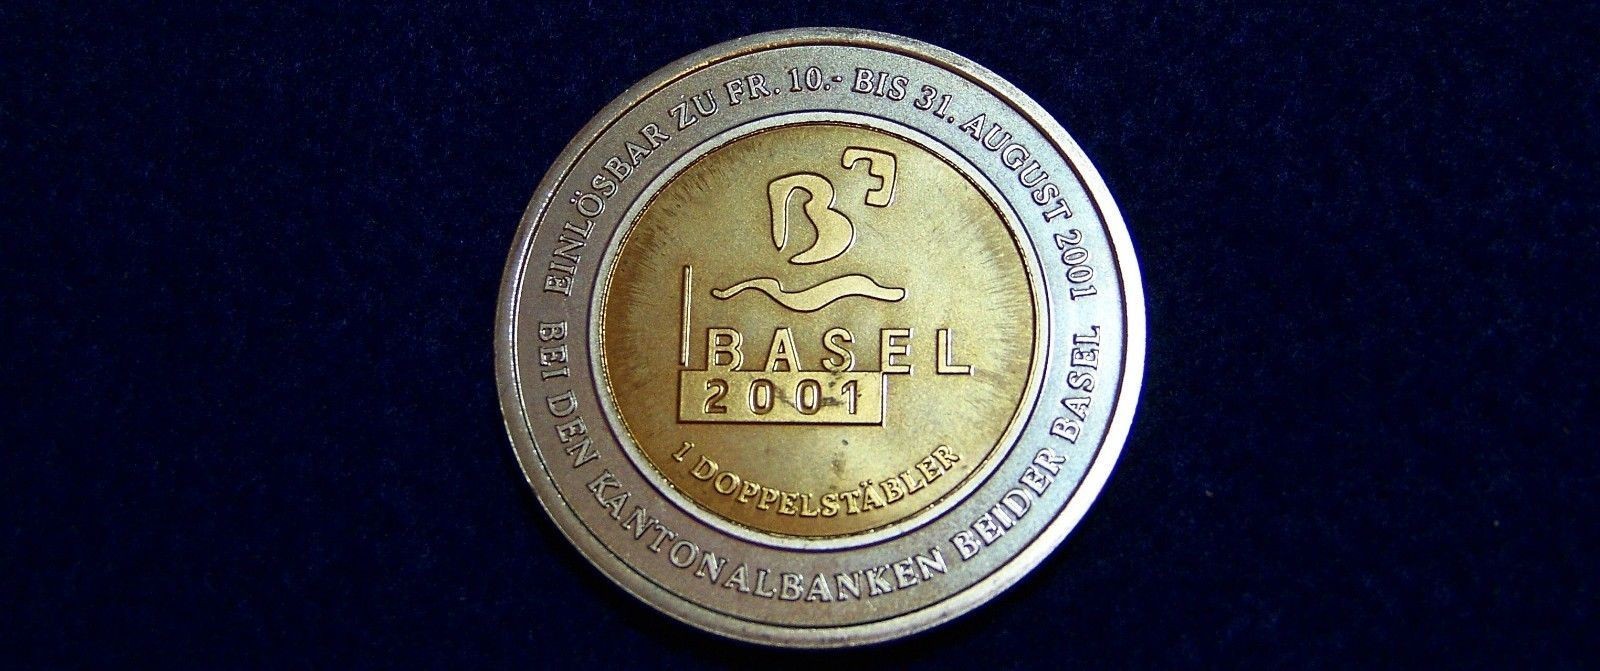 "Primary image for 2001 Switzerland Bimetallic Token ""KANTON BASEL"", Brilliant Uncirculated"